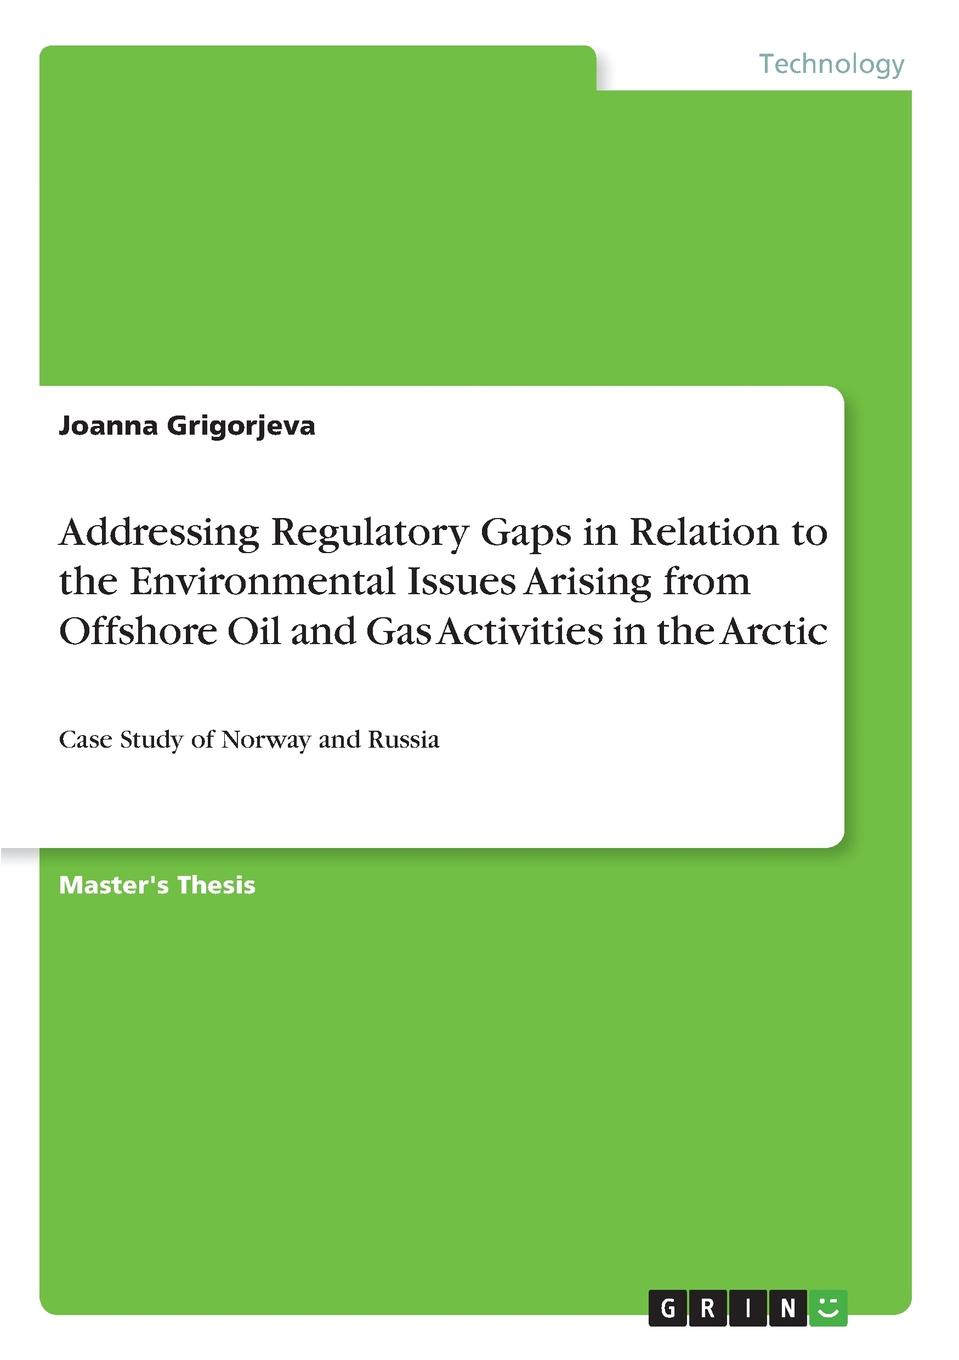 Joanna Grigorjeva Addressing Regulatory Gaps in Relation to the Environmental Issues Arising from Offshore Oil and Gas Activities Arctic